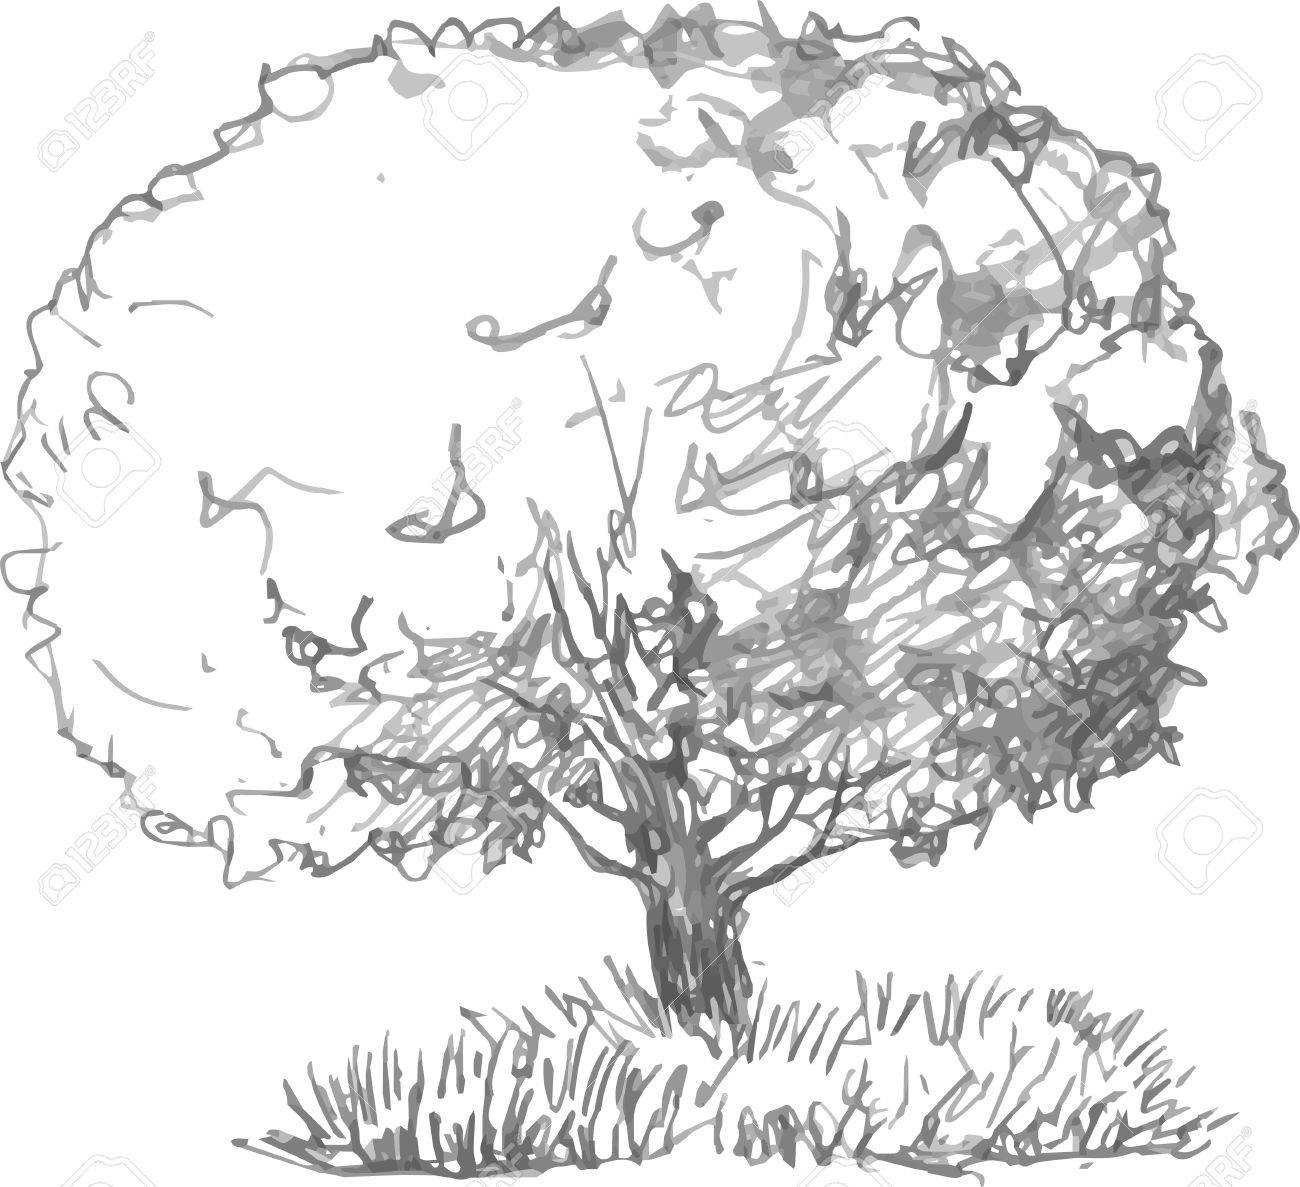 Deciduous tree with leaves and grass drawing by pencil sketch of wild nature forest